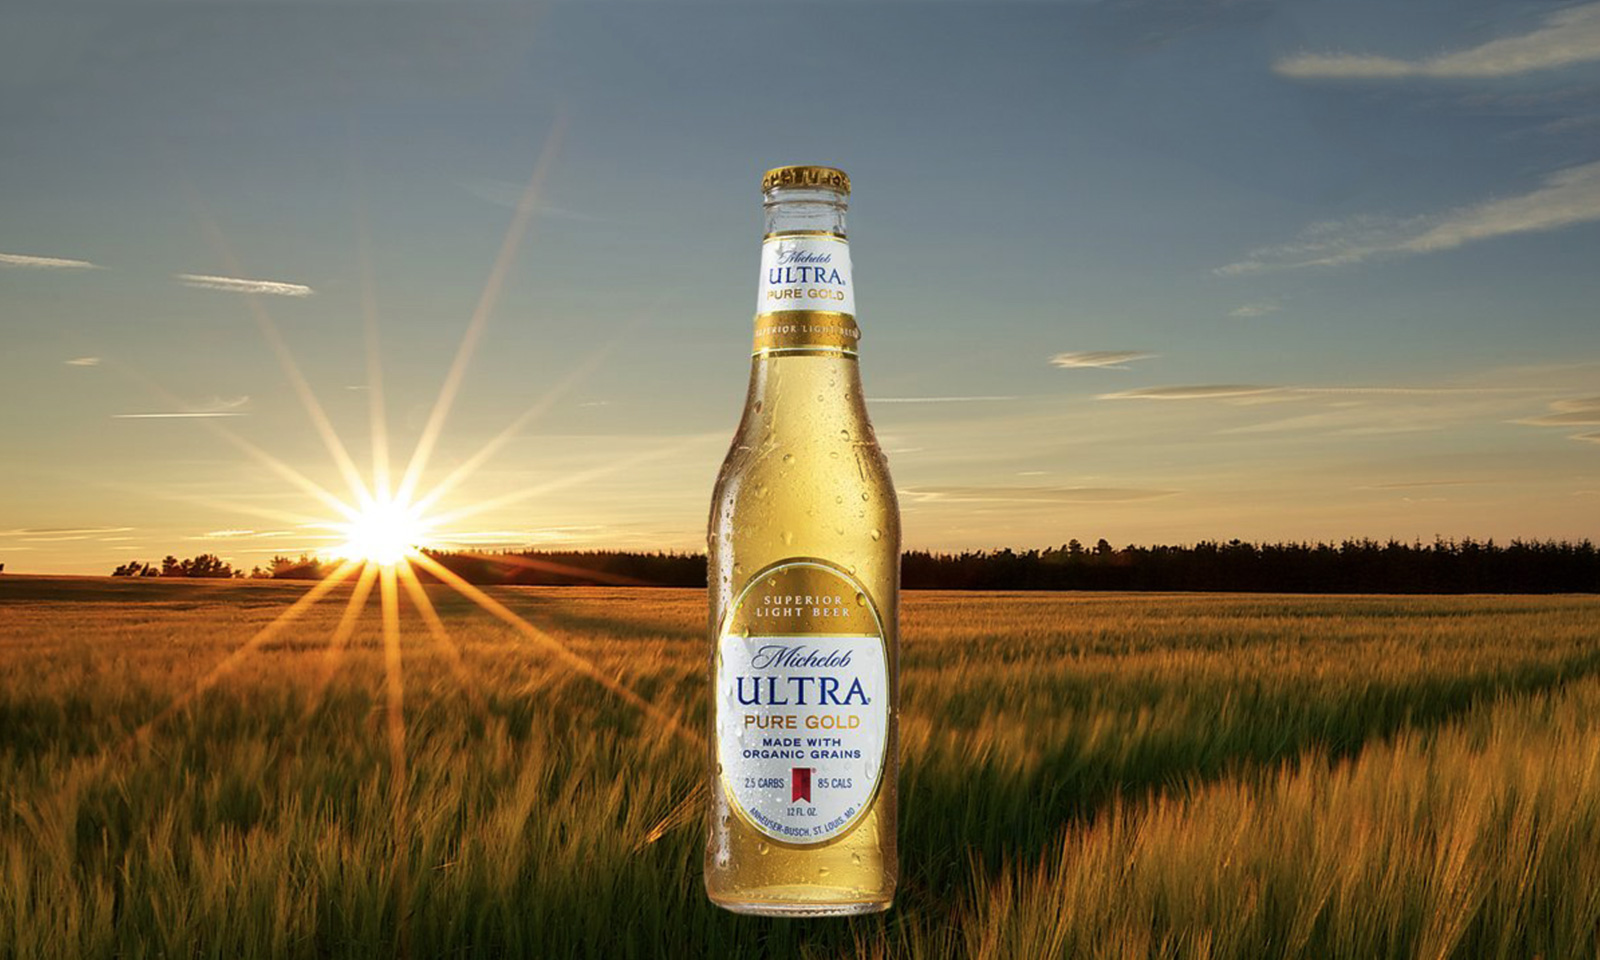 Michelob ULTRA Unveiled Its Newest Innovation U2014 Michelob ULTRA Pure Gold,  The First Superior Light Beer Made With Organic Grains And It Offers A  Pure, ...